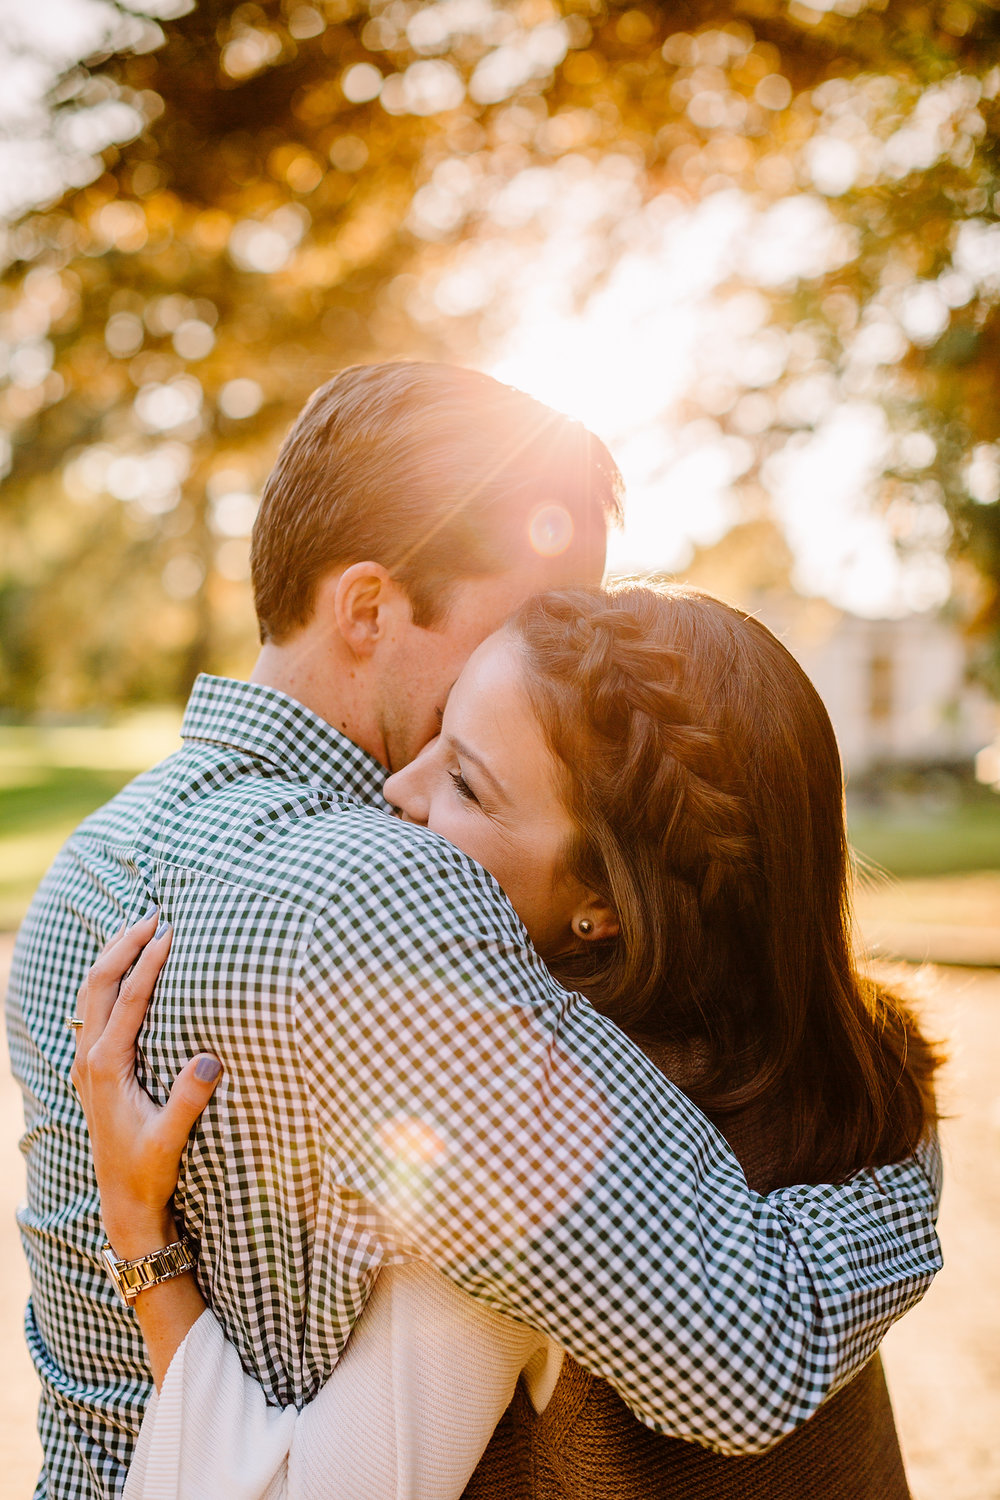 st. anselm engagement photos on campus in the fall